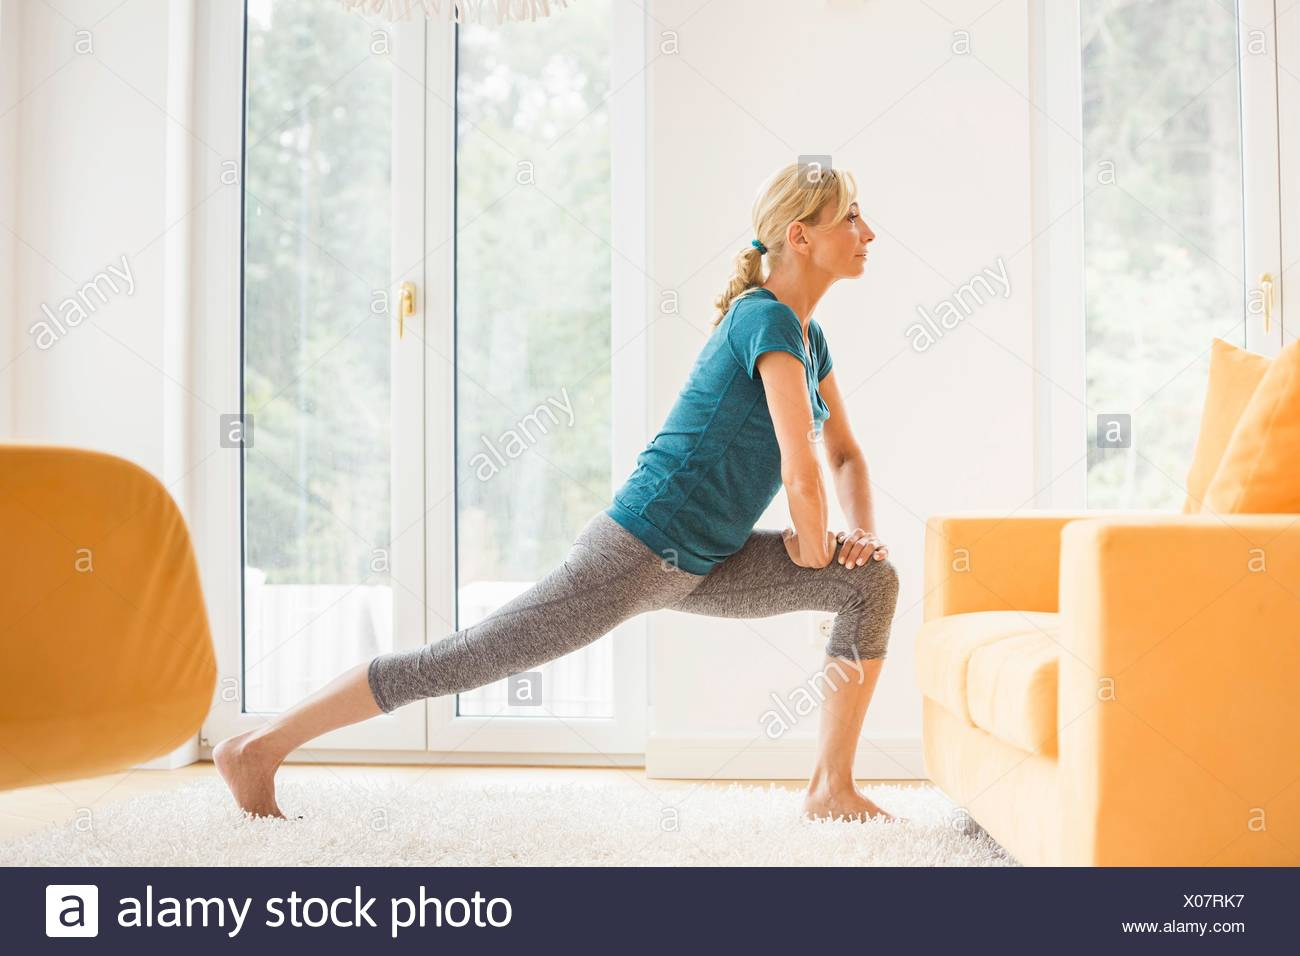 Mature woman doing lunge stretch exercise in living room - Stock Image